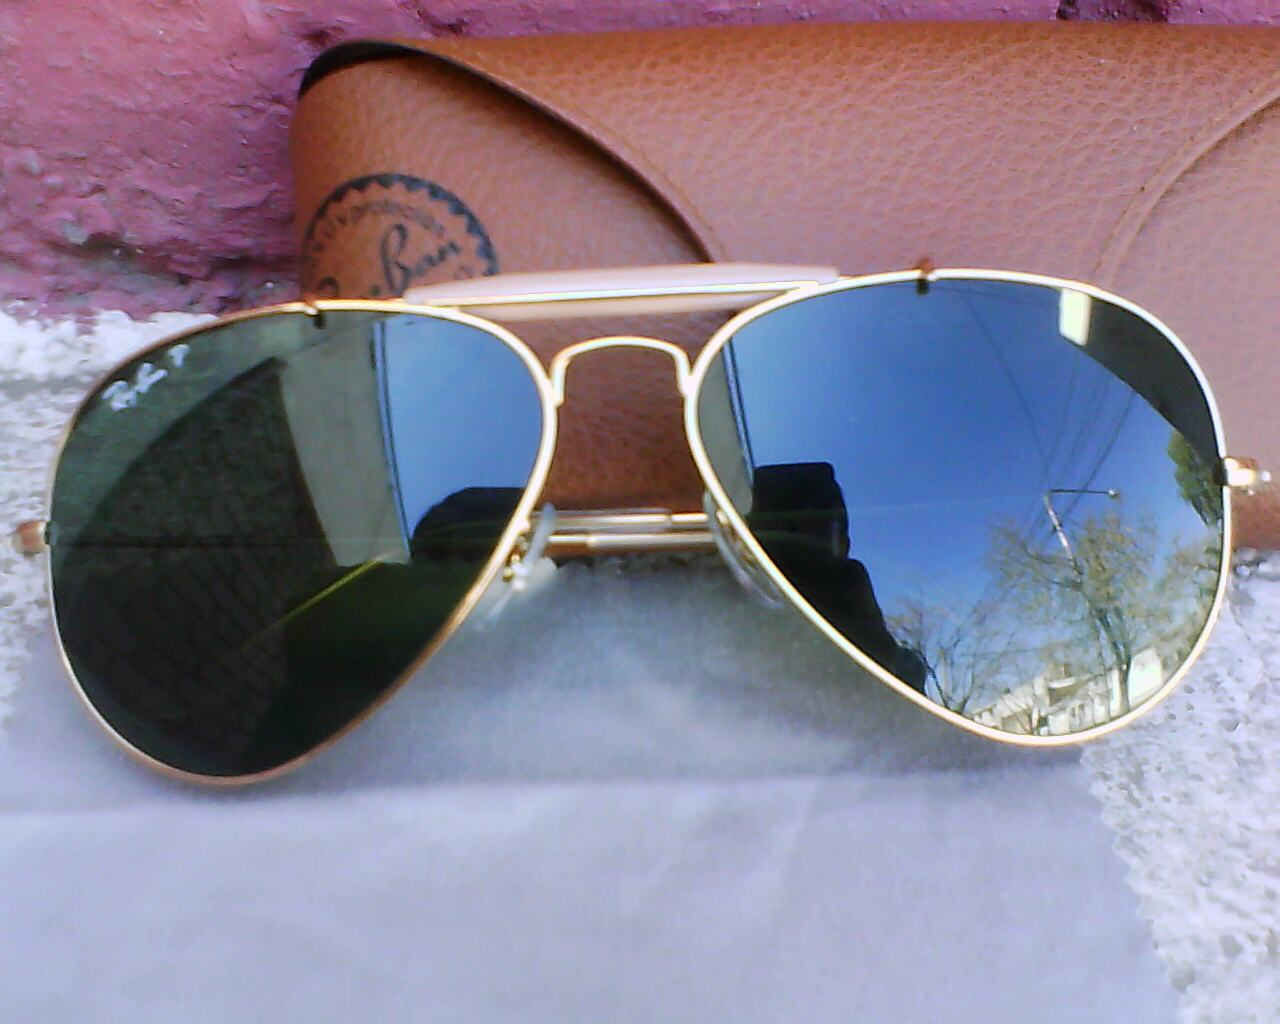 ray ban glass wallpaper  ray ban sunglasses images fer hd wallpaper and background photos